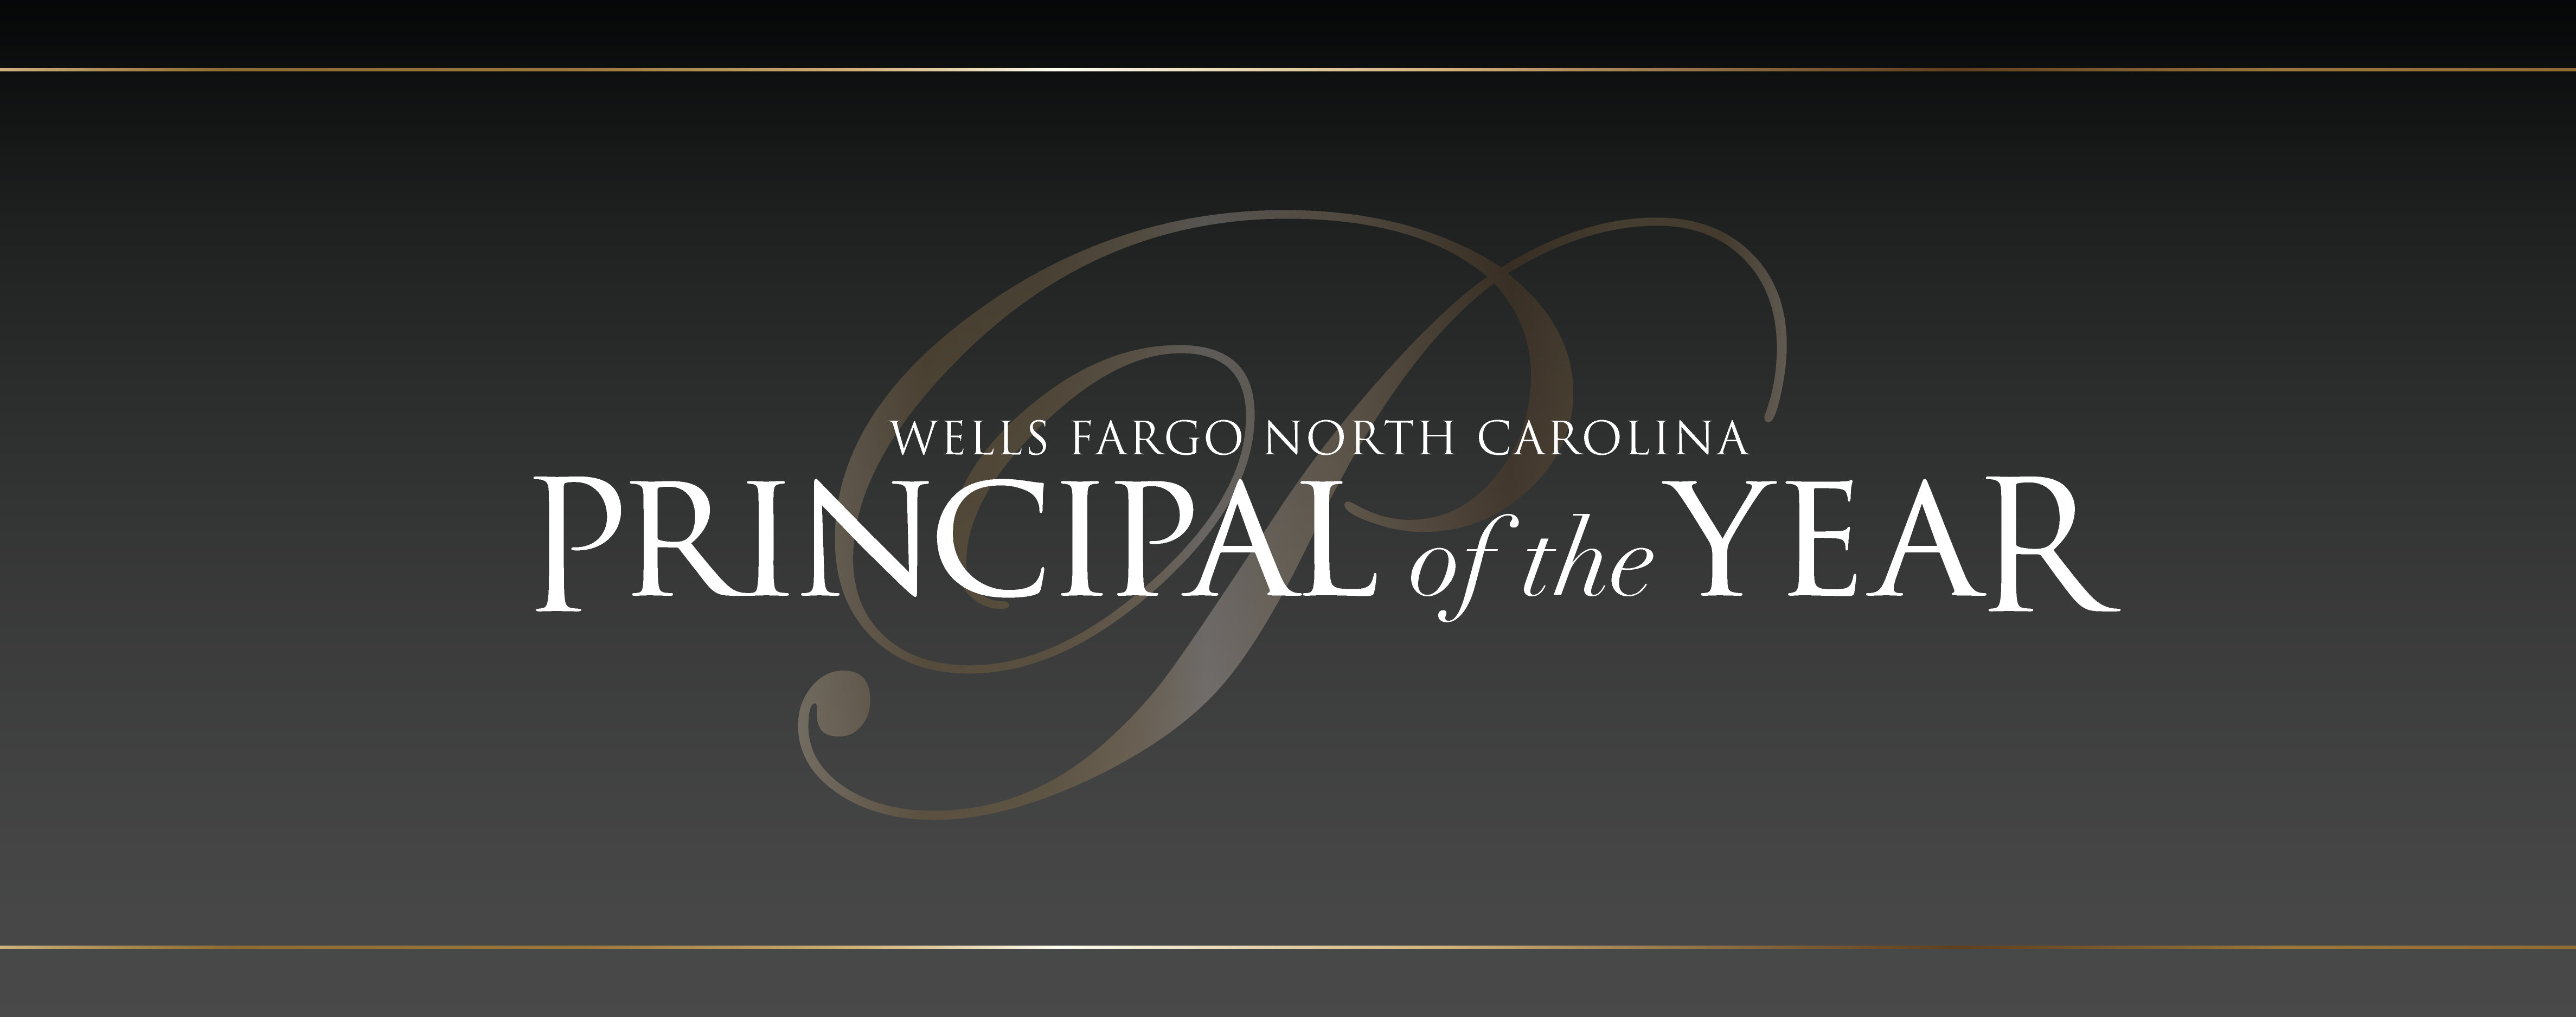 Principal of the Year Banner